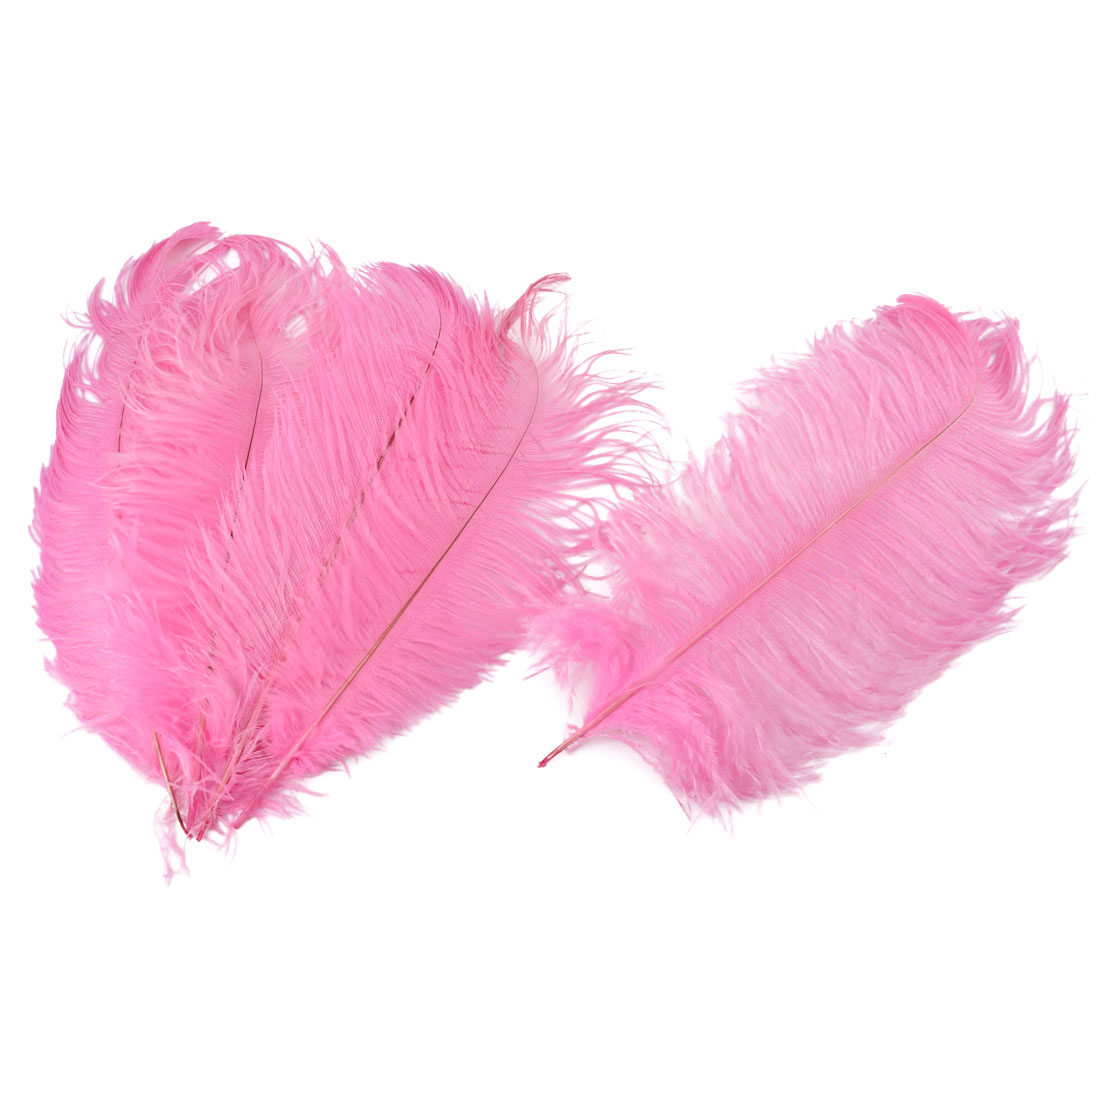 Household Wedding Party Ornament Artificial Ostrich Feather Plume Pink 30-35cm 5pcs